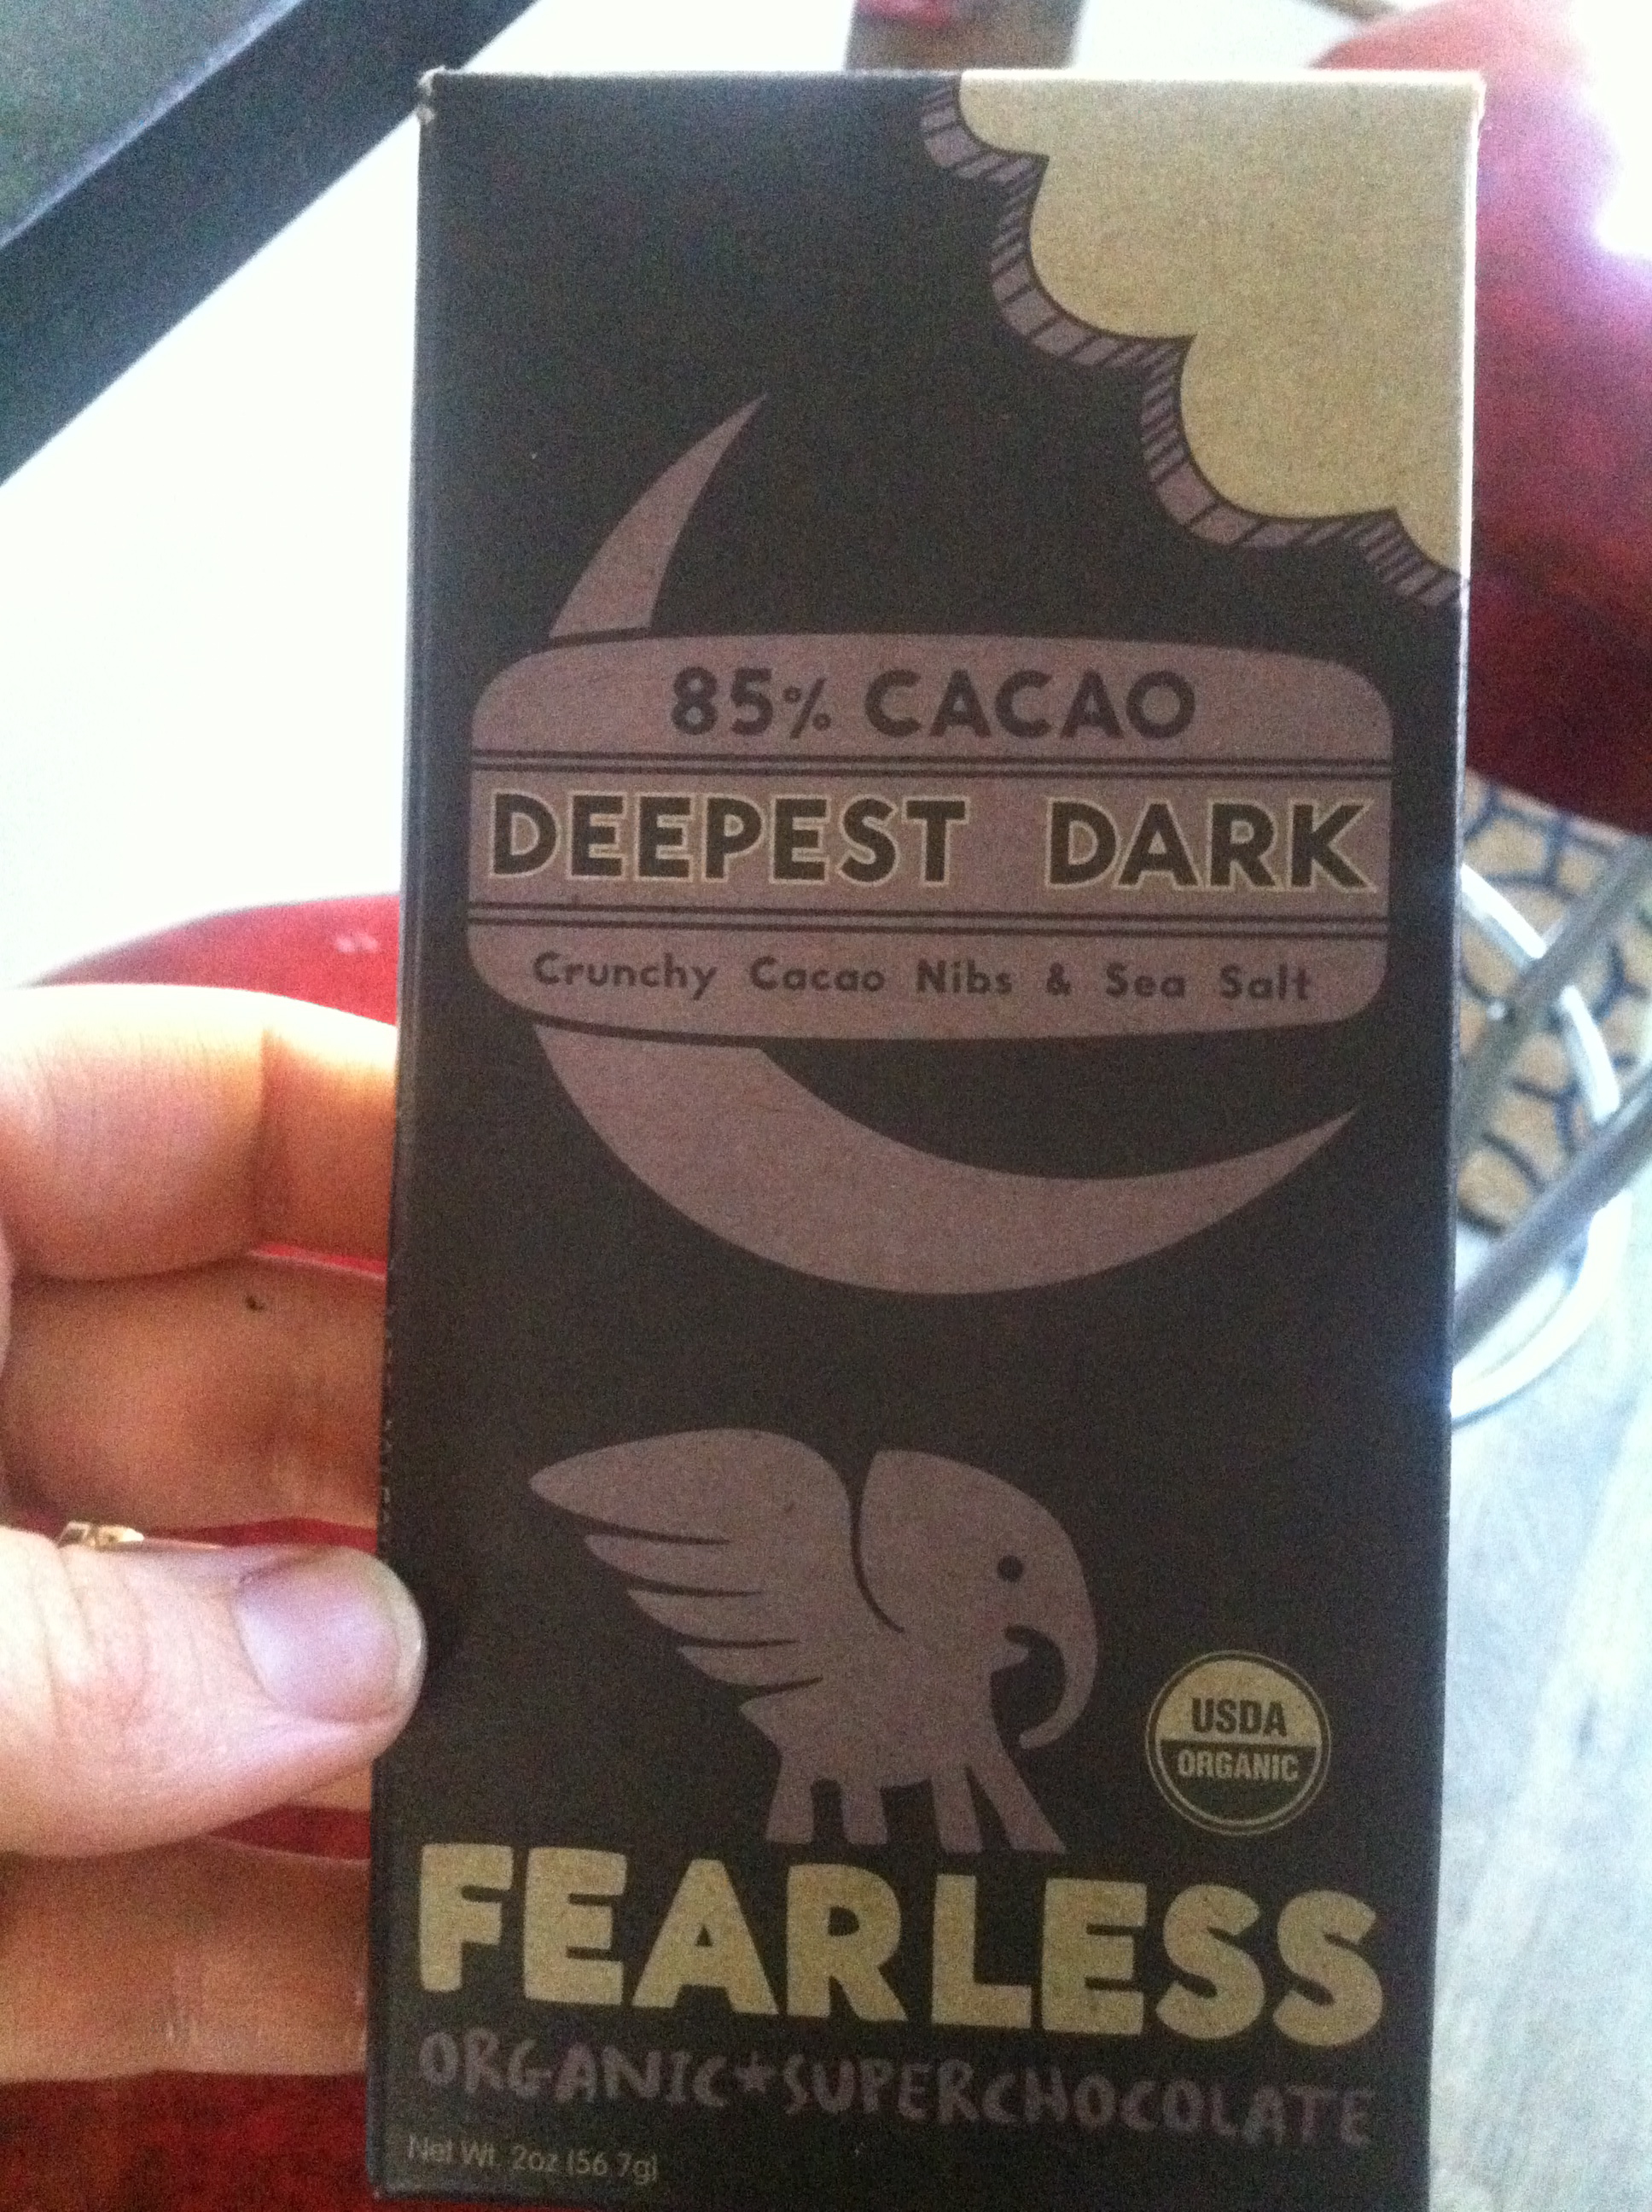 I (... was searching for deep, dark, fearless chocolate and ...) found this today. It's rich and giving and it made my day brighter.